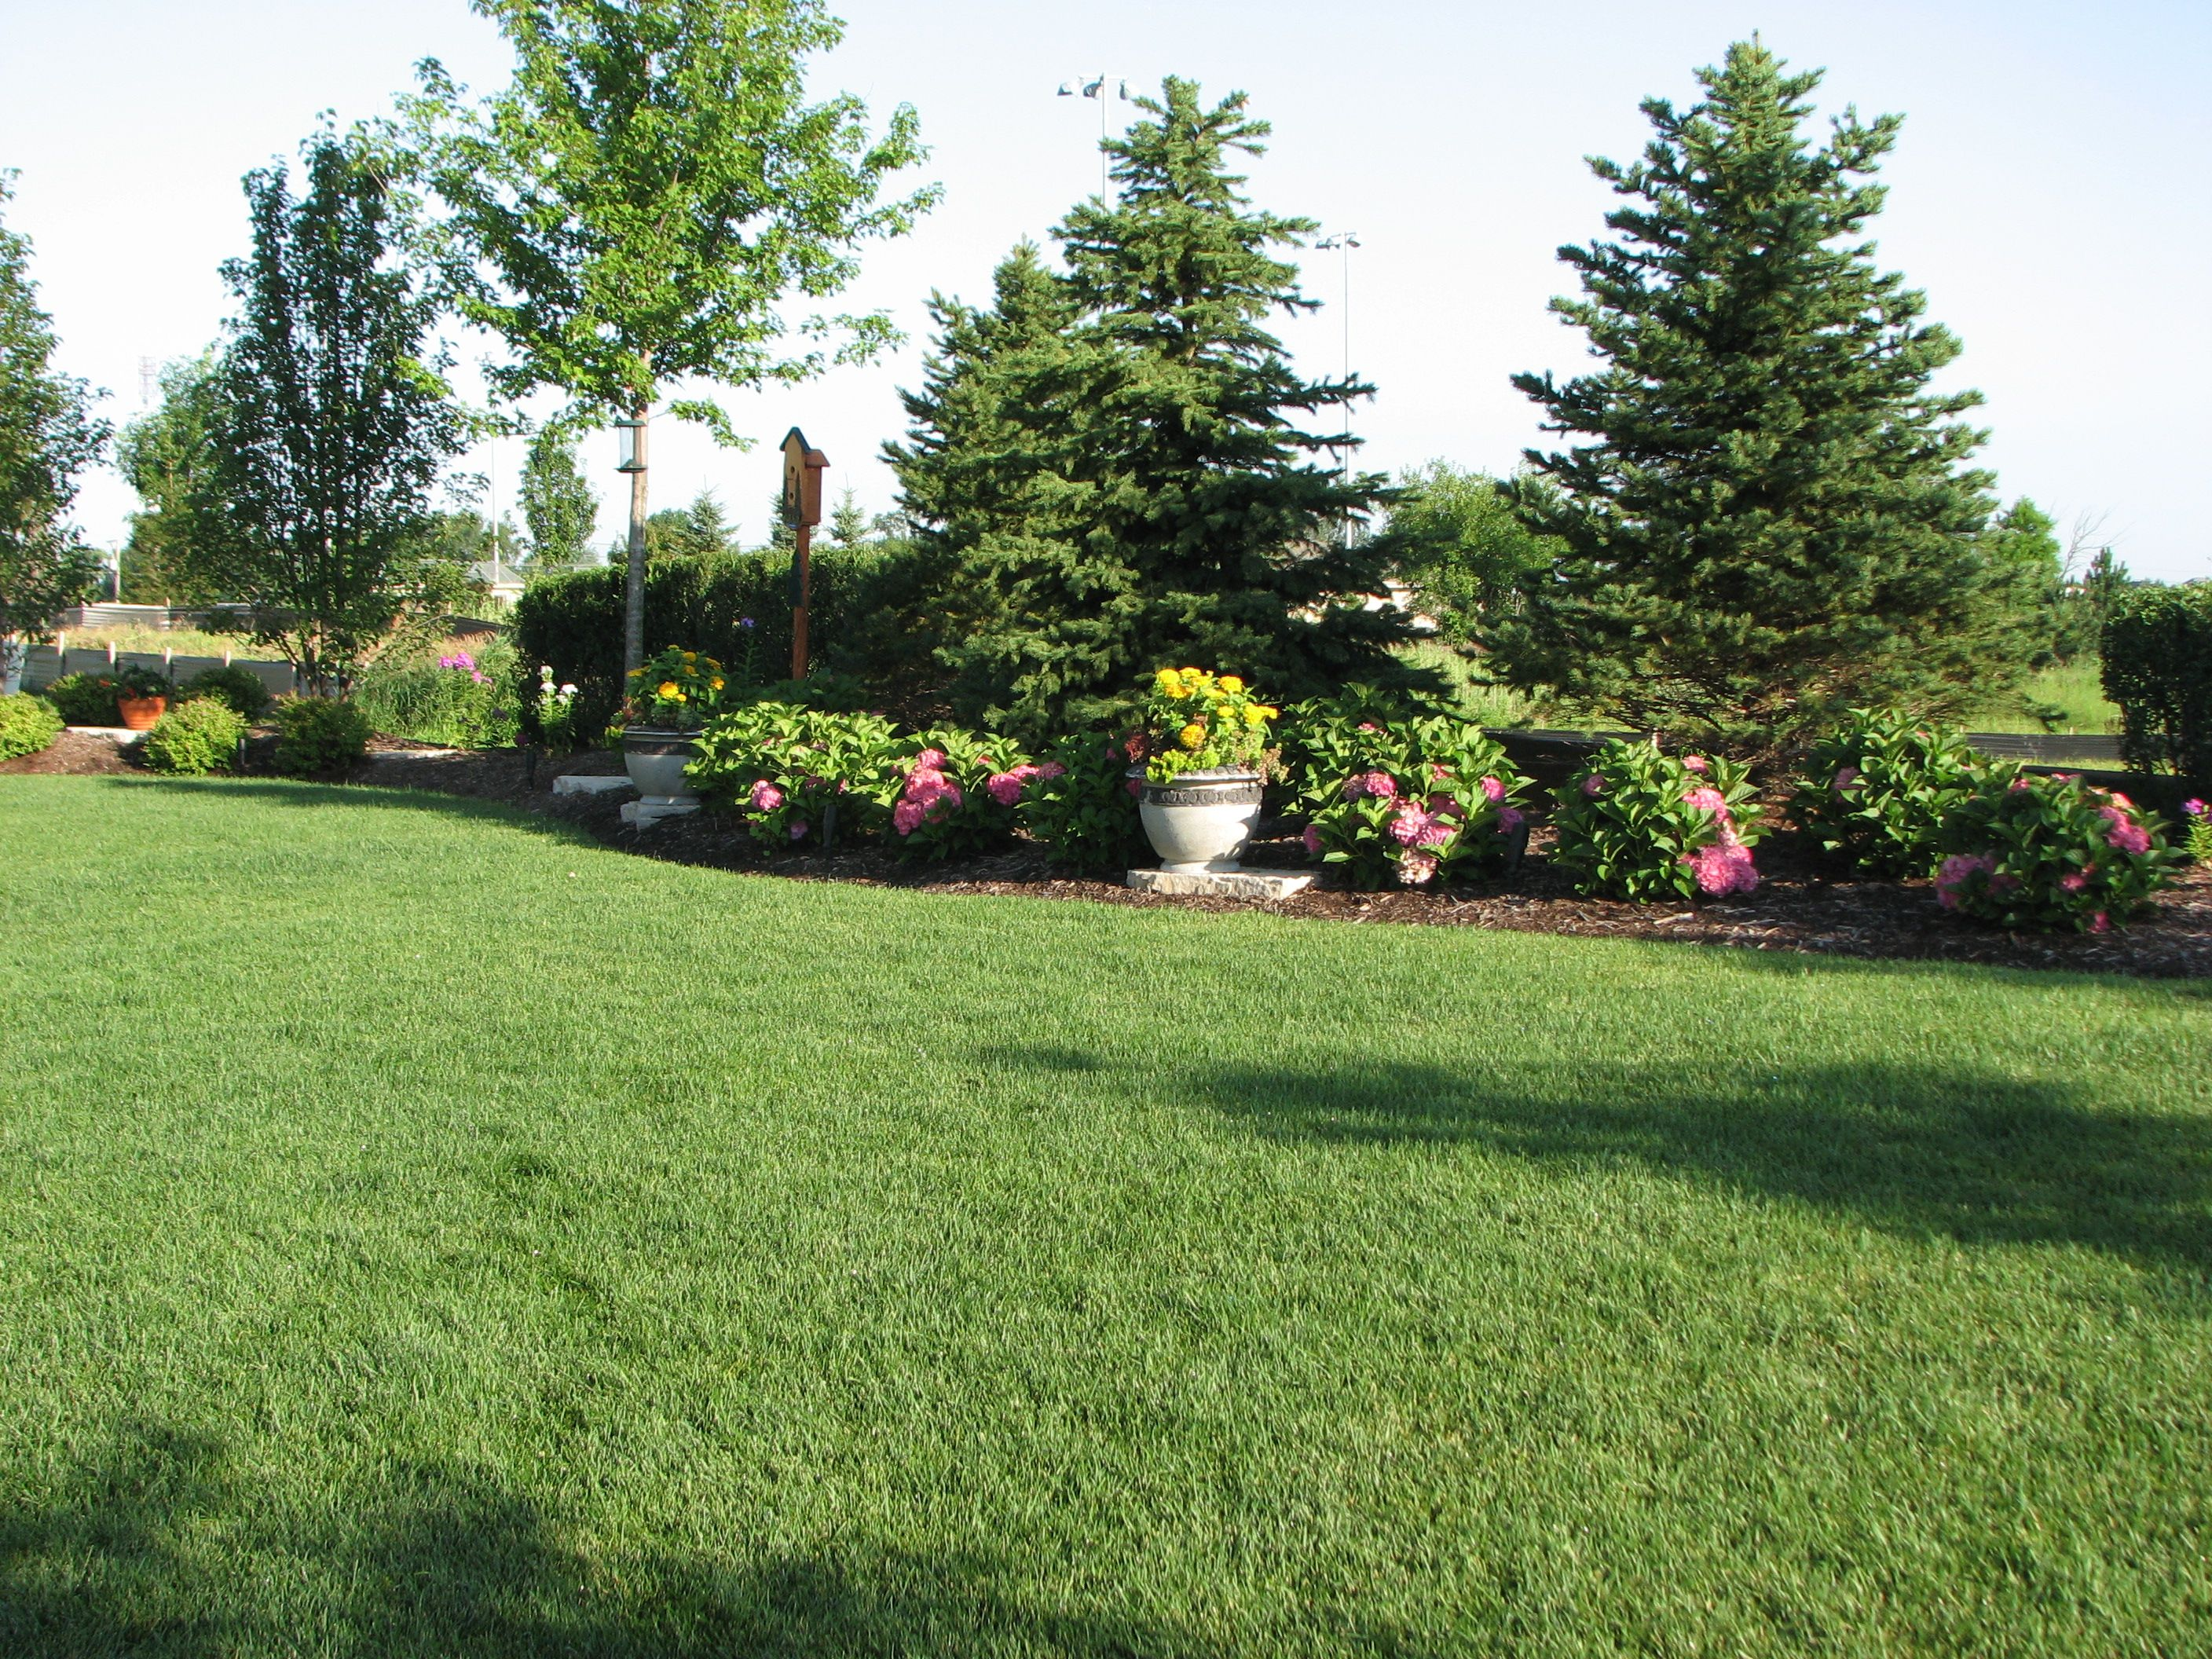 Backyard landscaping for privacy existing home for Landscaping tips